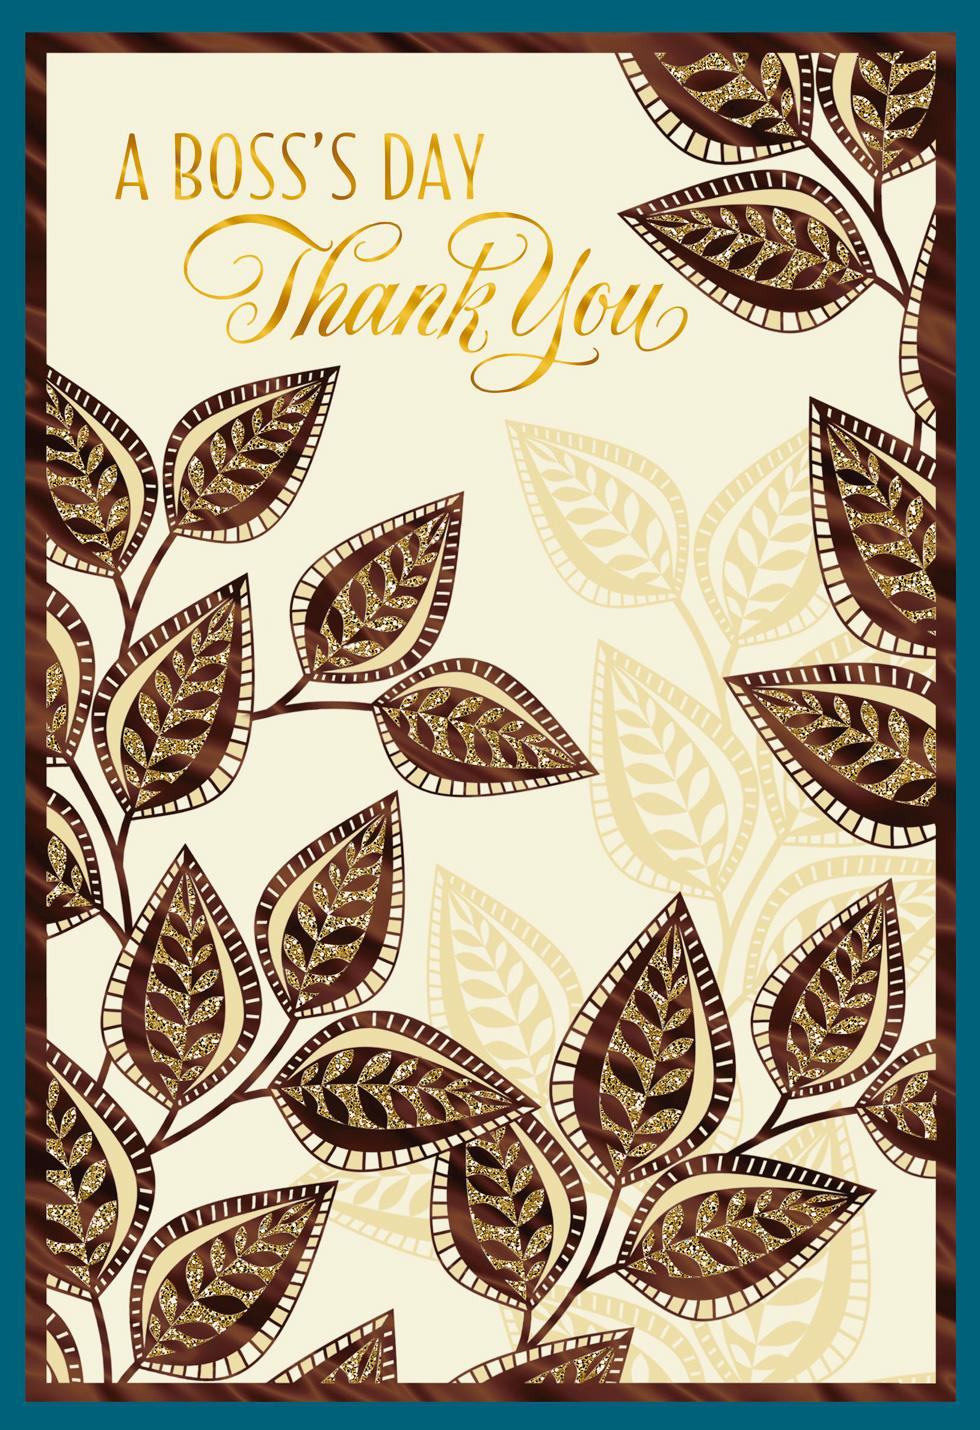 Wishing You The Best National Bosss Day Greeting Cards Hallmark